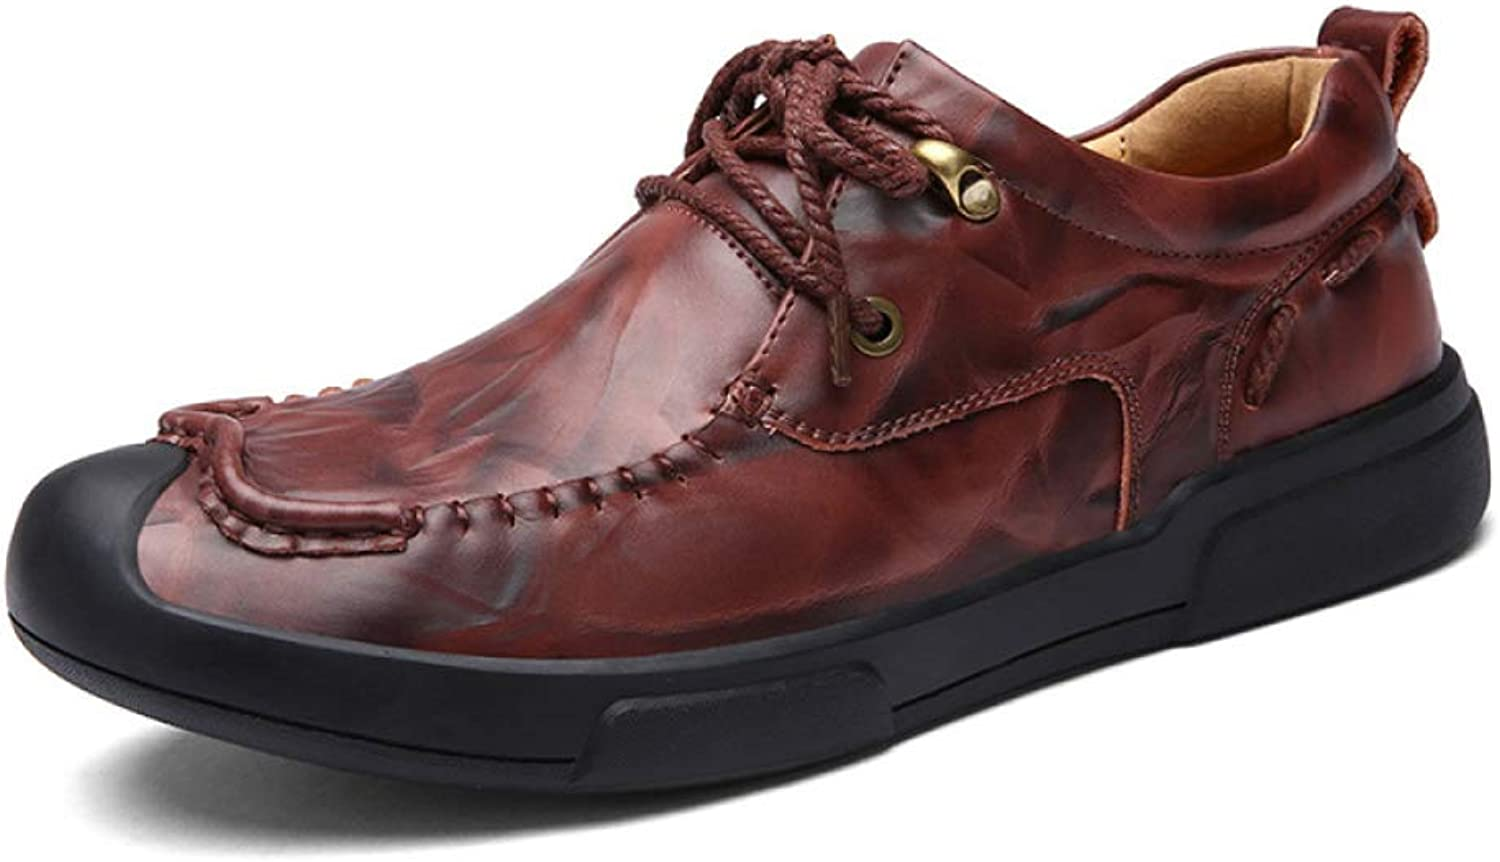 LUCKYEUD Mens Business shoes Leather-Lined Lightweight Formal Business Work Comfort Lace-Up shoes Suitable For All Seasons,Red-EU43